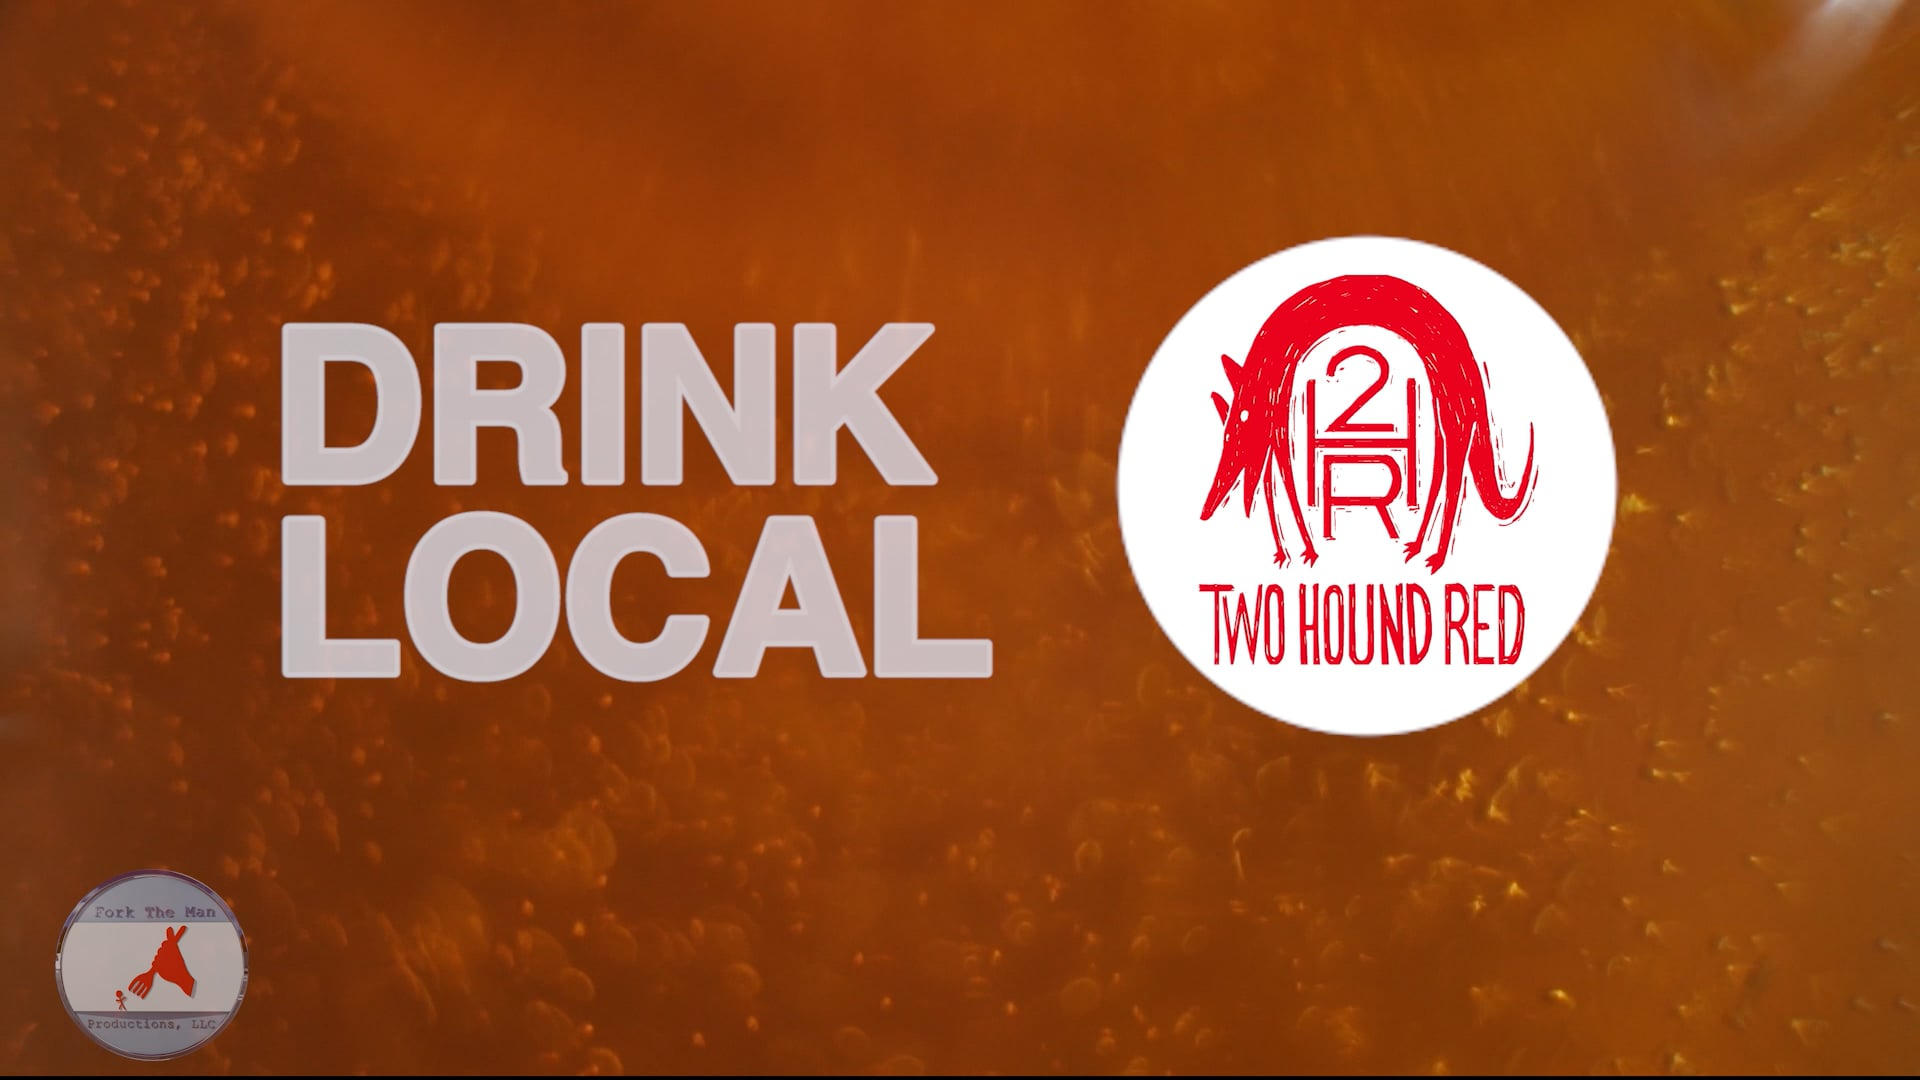 Drink Local Two Hound Red